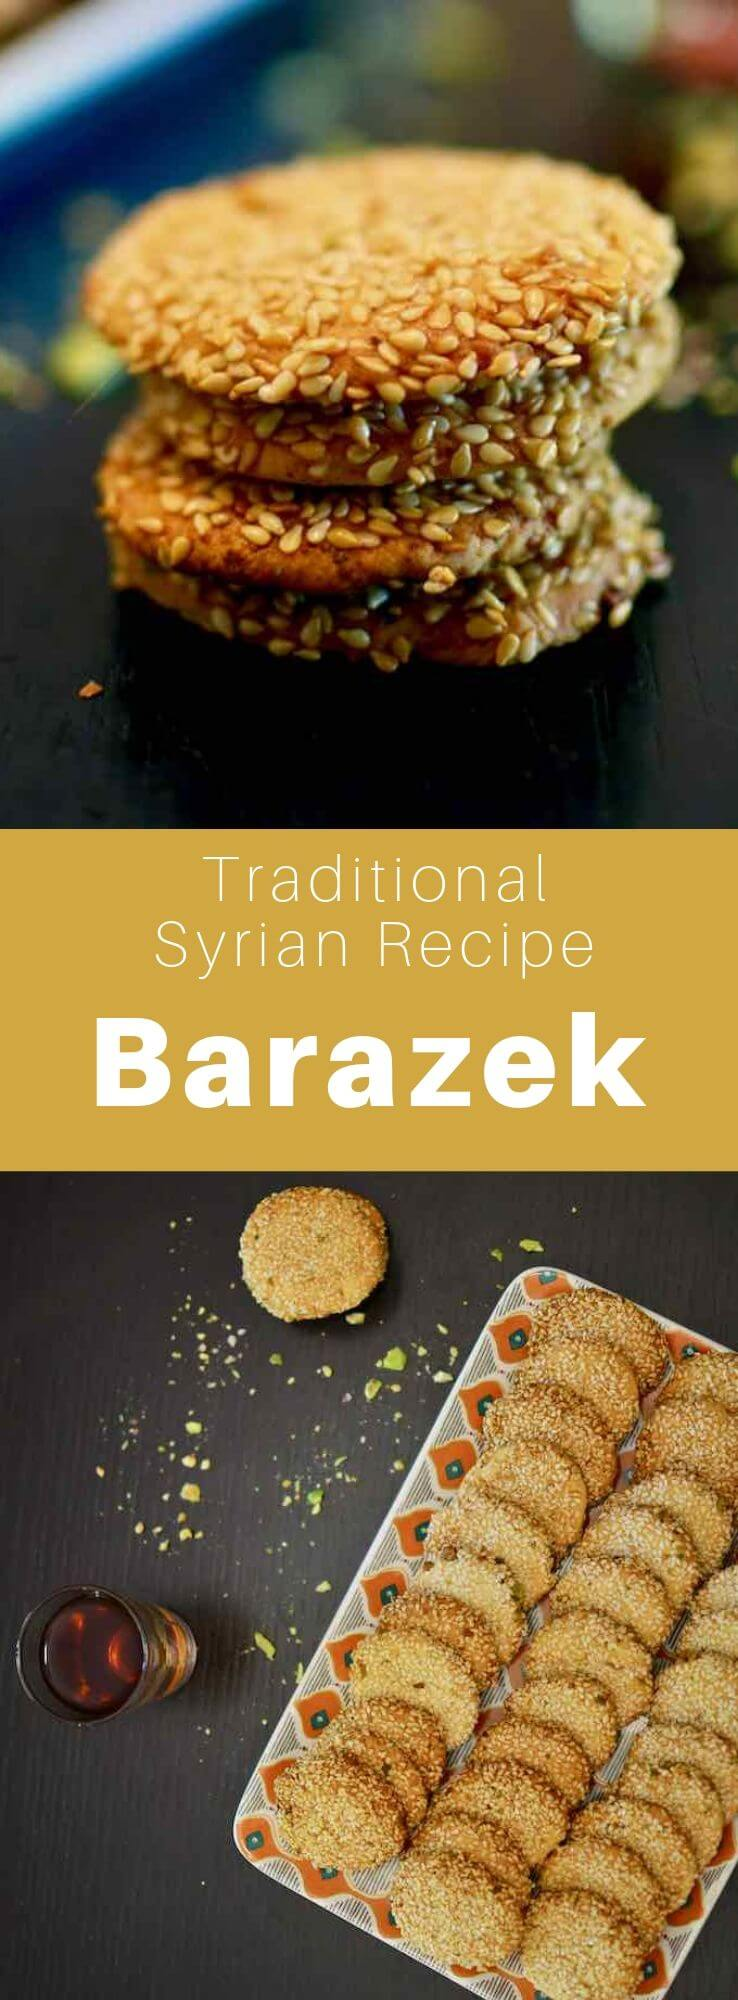 Barazek is a sesame and pistachio cookie from Syria. It is often enjoyed with tea or ice cream. #Syria #SyrianCuisine #SyrianRecipe #SyrianFood #MiddleEasternCuisine #MiddleEasternRecipe #MiddleEasternFood #ArabCuisine #ArabRecipe #ArabFood #WorldCuisine #196flavors